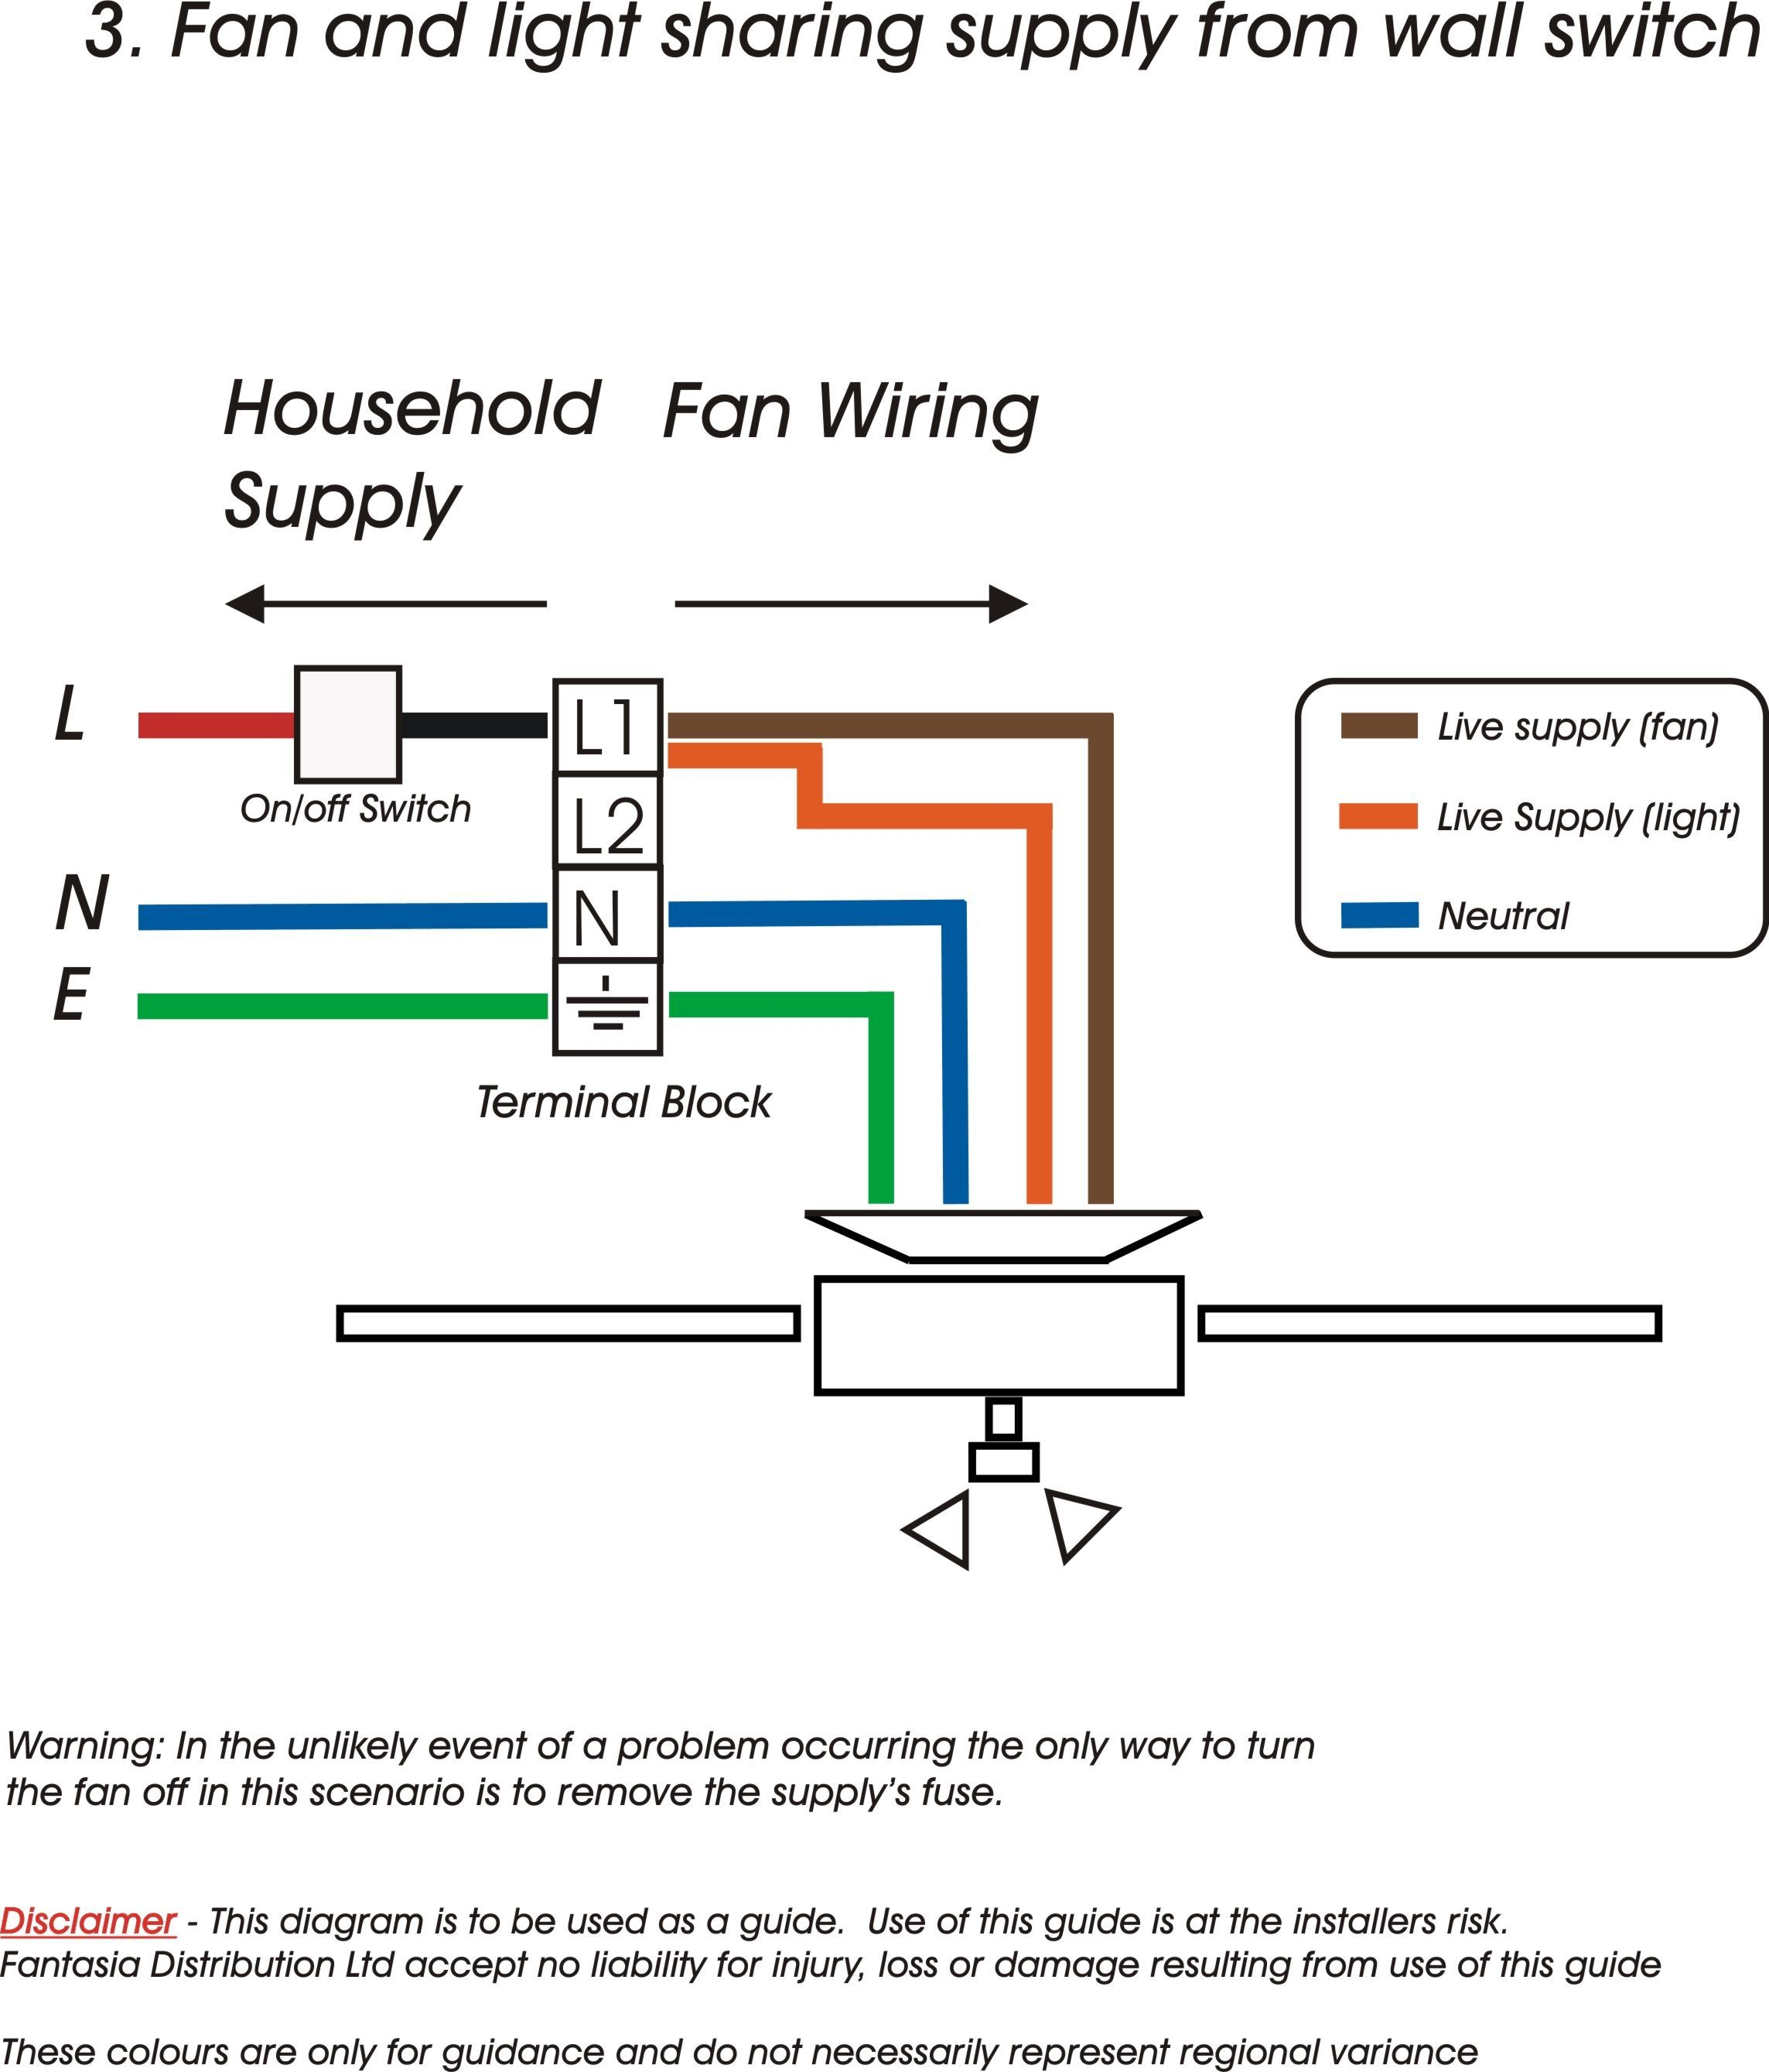 a6e72fabacaaa74231f750a53a3d3cb0 ceiling fan wall switch wiring diagram ladysro info regency ceiling fan wiring diagram at bakdesigns.co